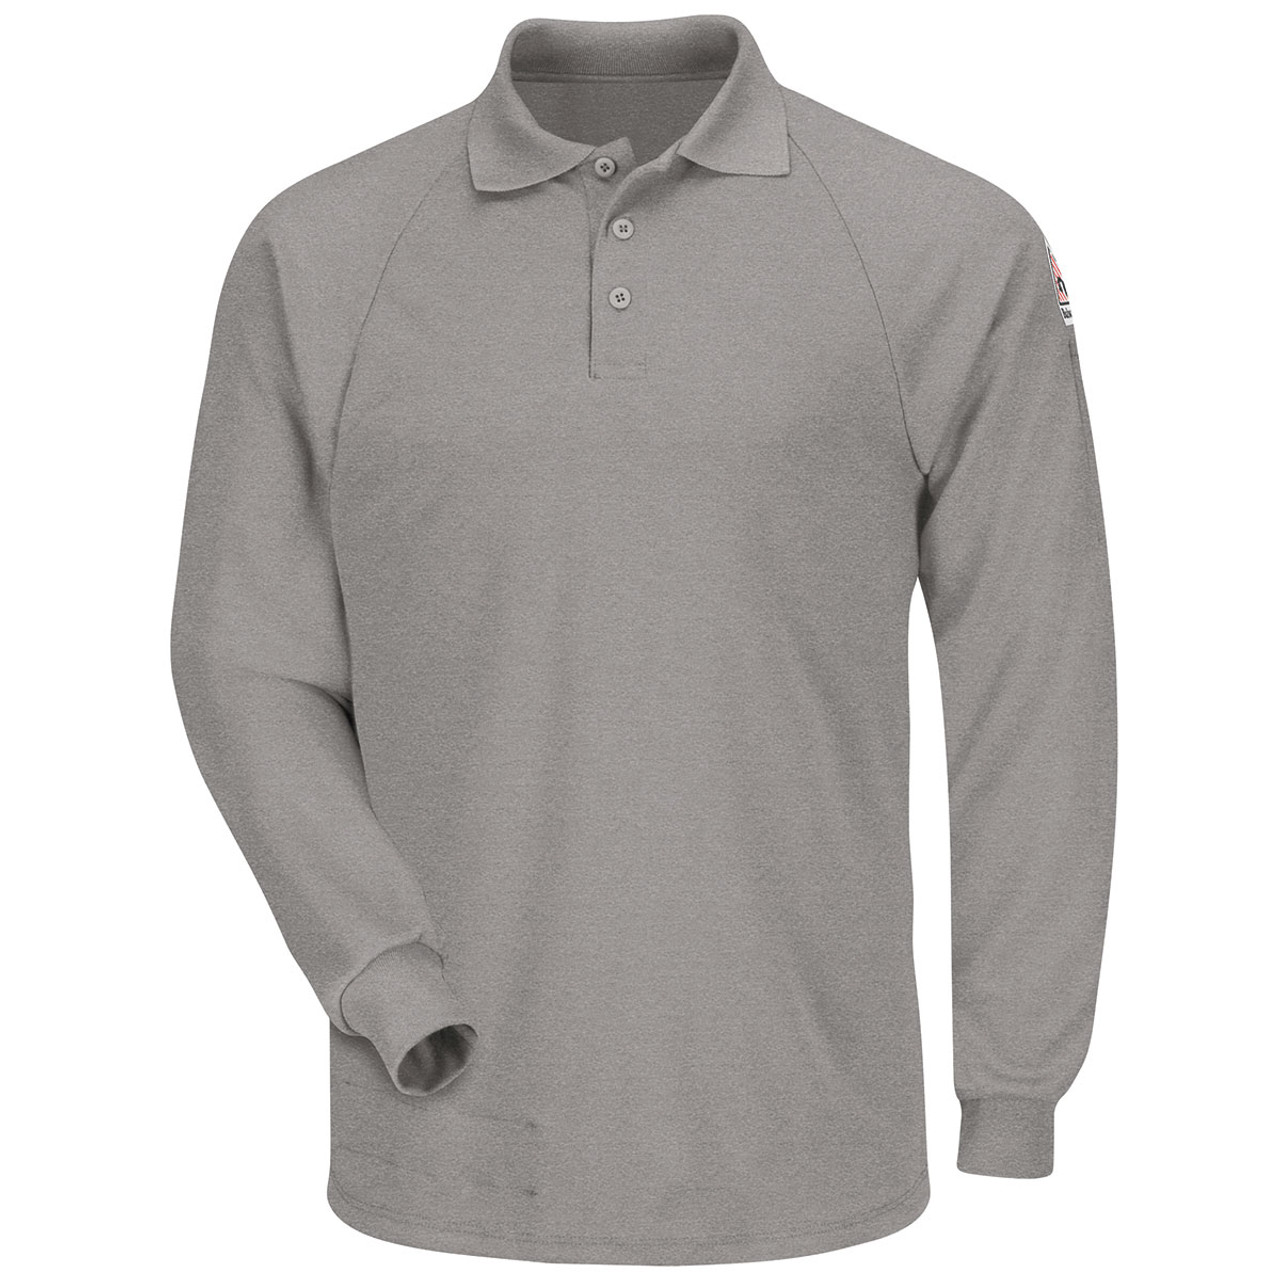 c5364277b665 Bulwark FR Cooltouch 2 Long Sleeve Polo Shirt SMP2 Gray Front